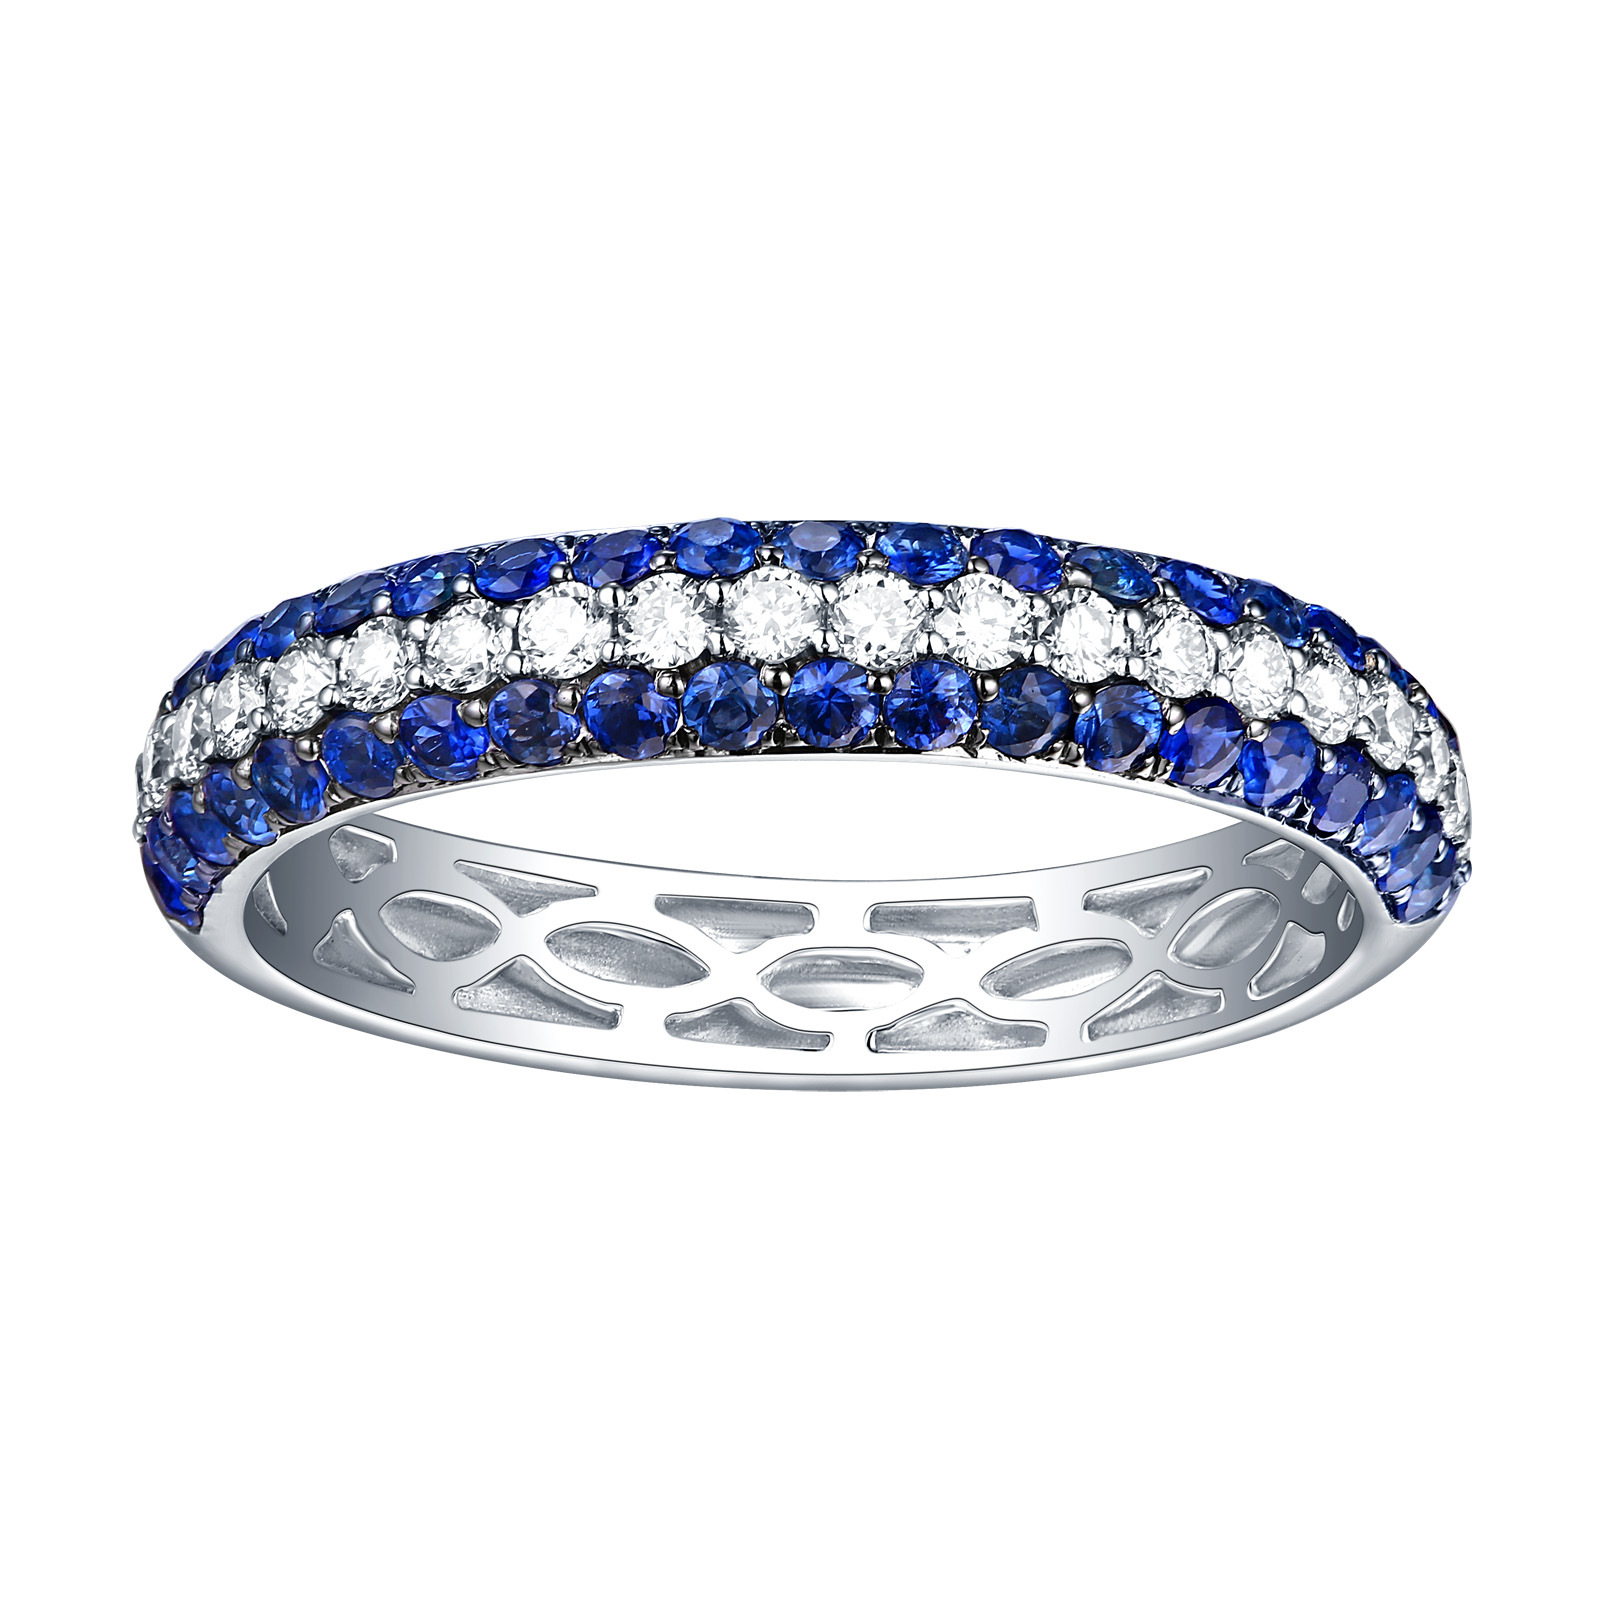 R10051WBS – 14K White Gold Blue Sapphire and Diamond Ring, 0.97 TCW